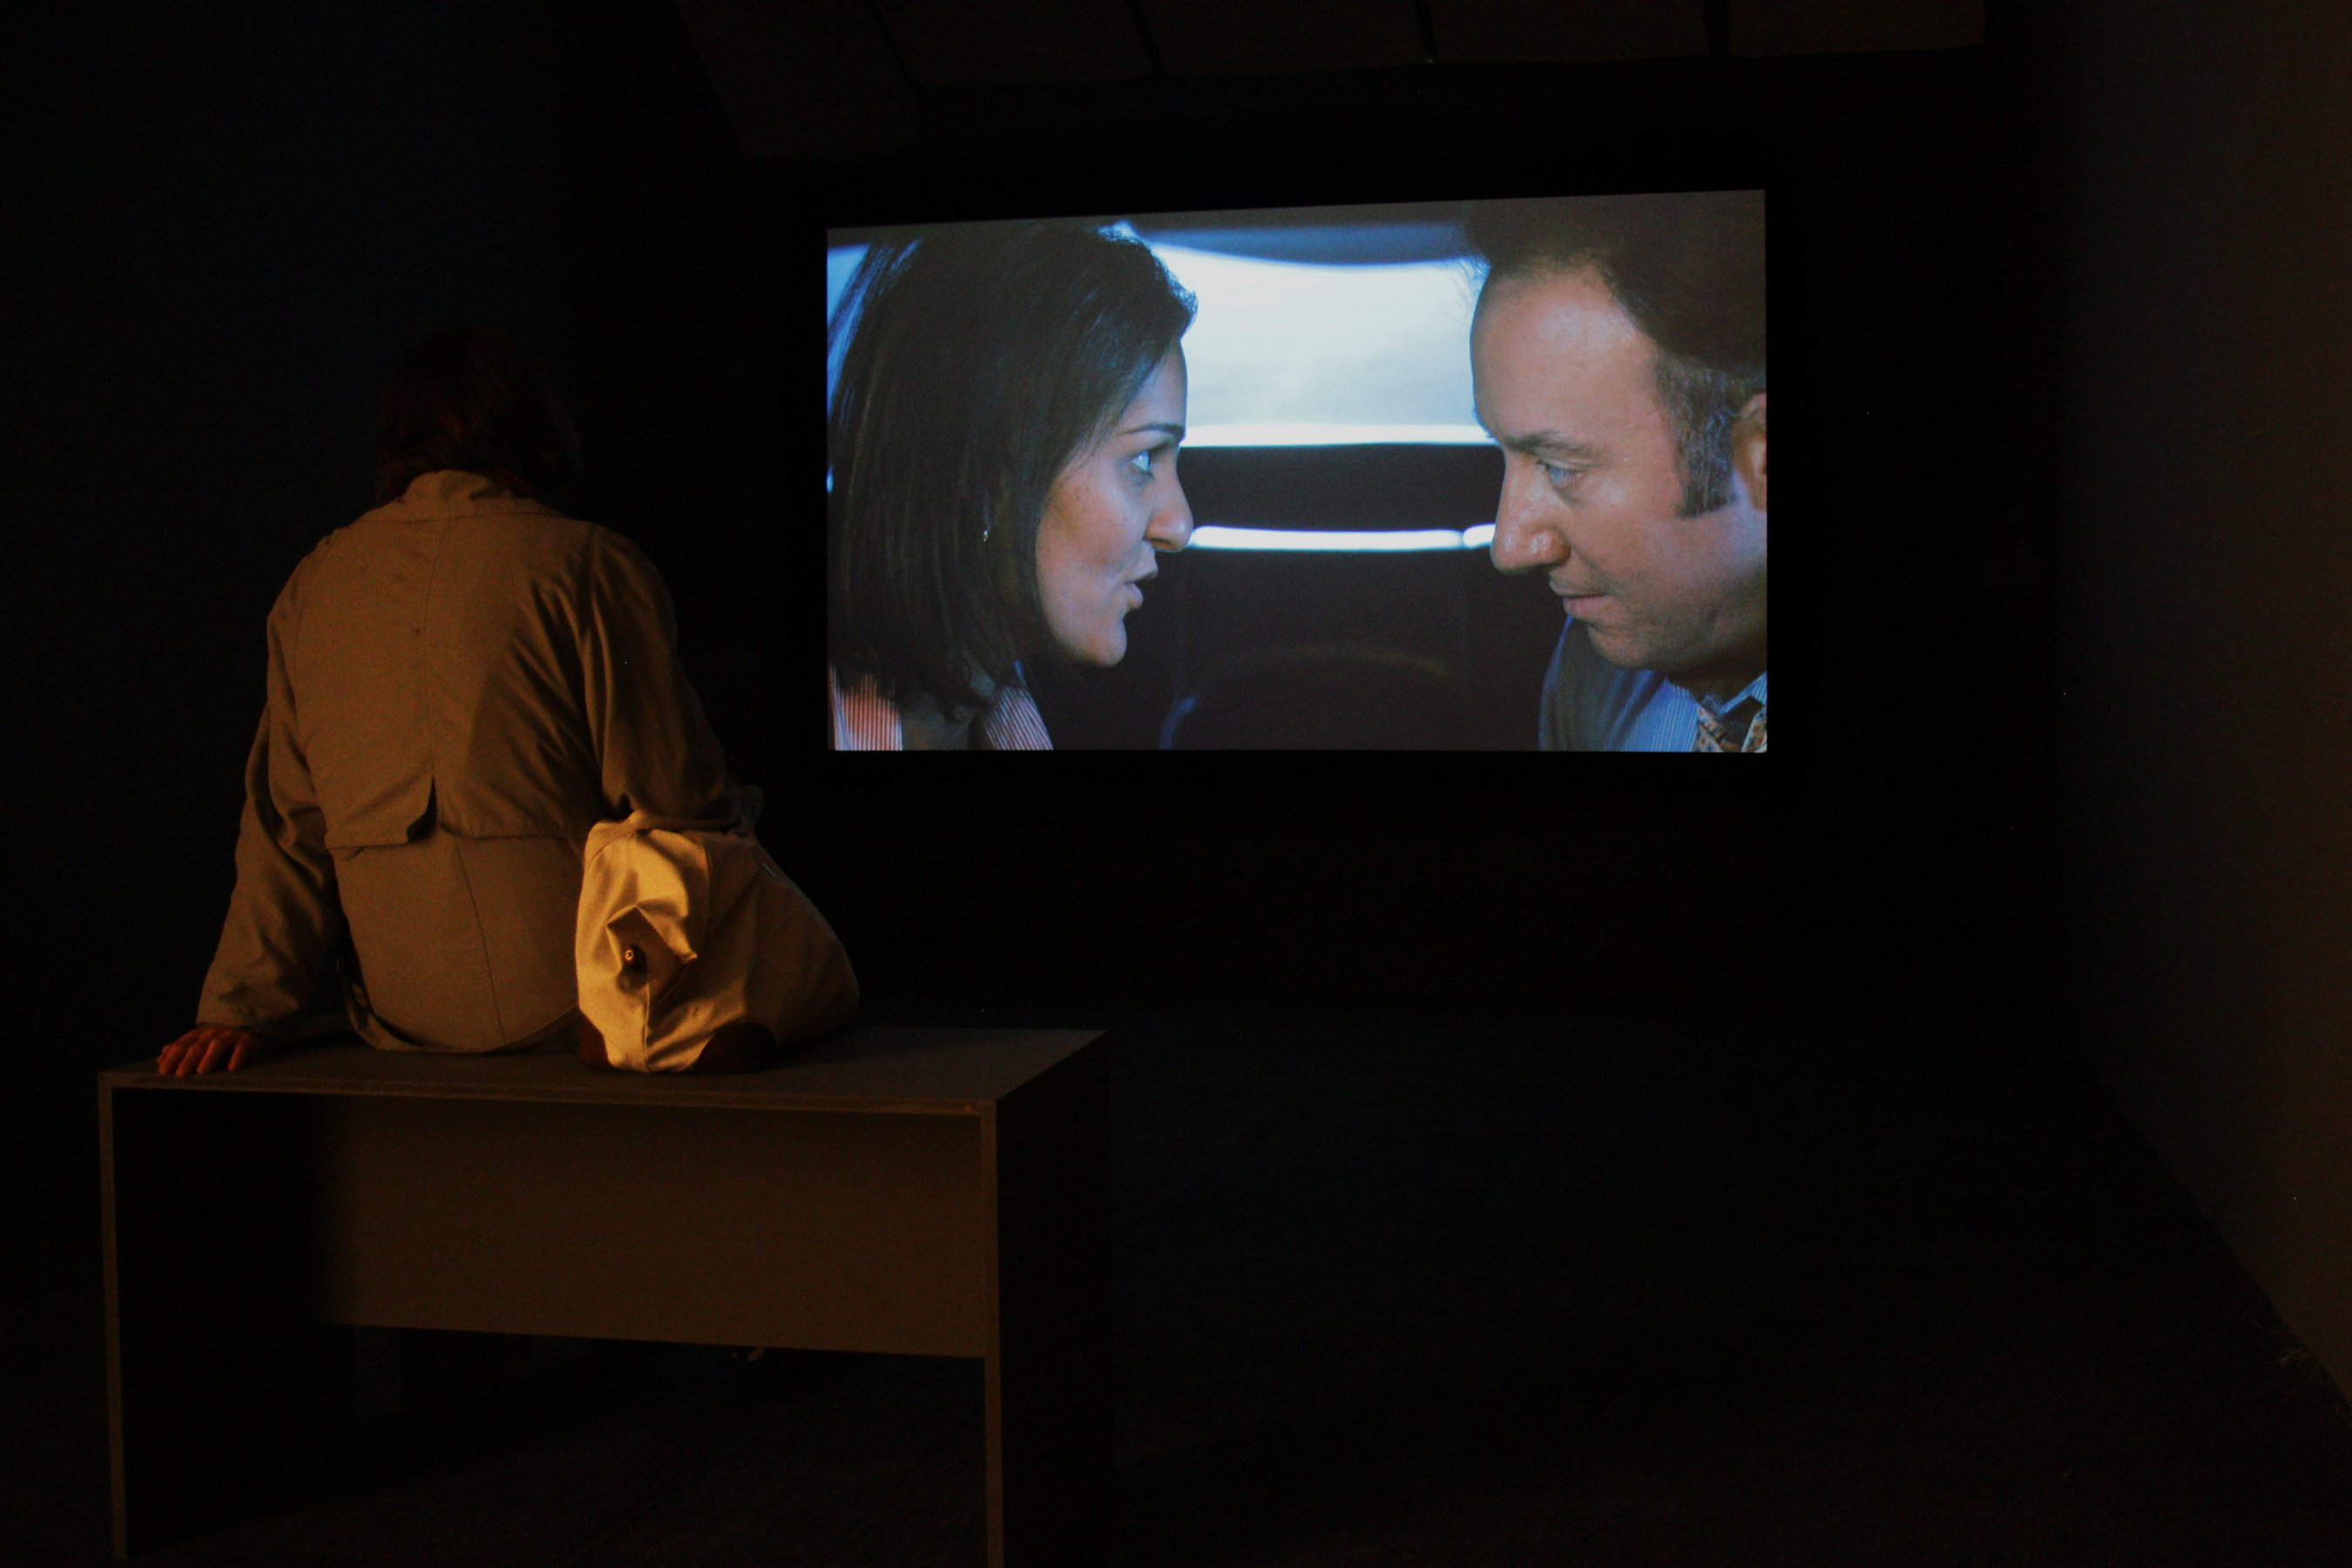 Maryam Jafri Mouthfeel, 2014 /2k HD film, color, sound - 21'34'' Ed. 2/5 + 2 AP